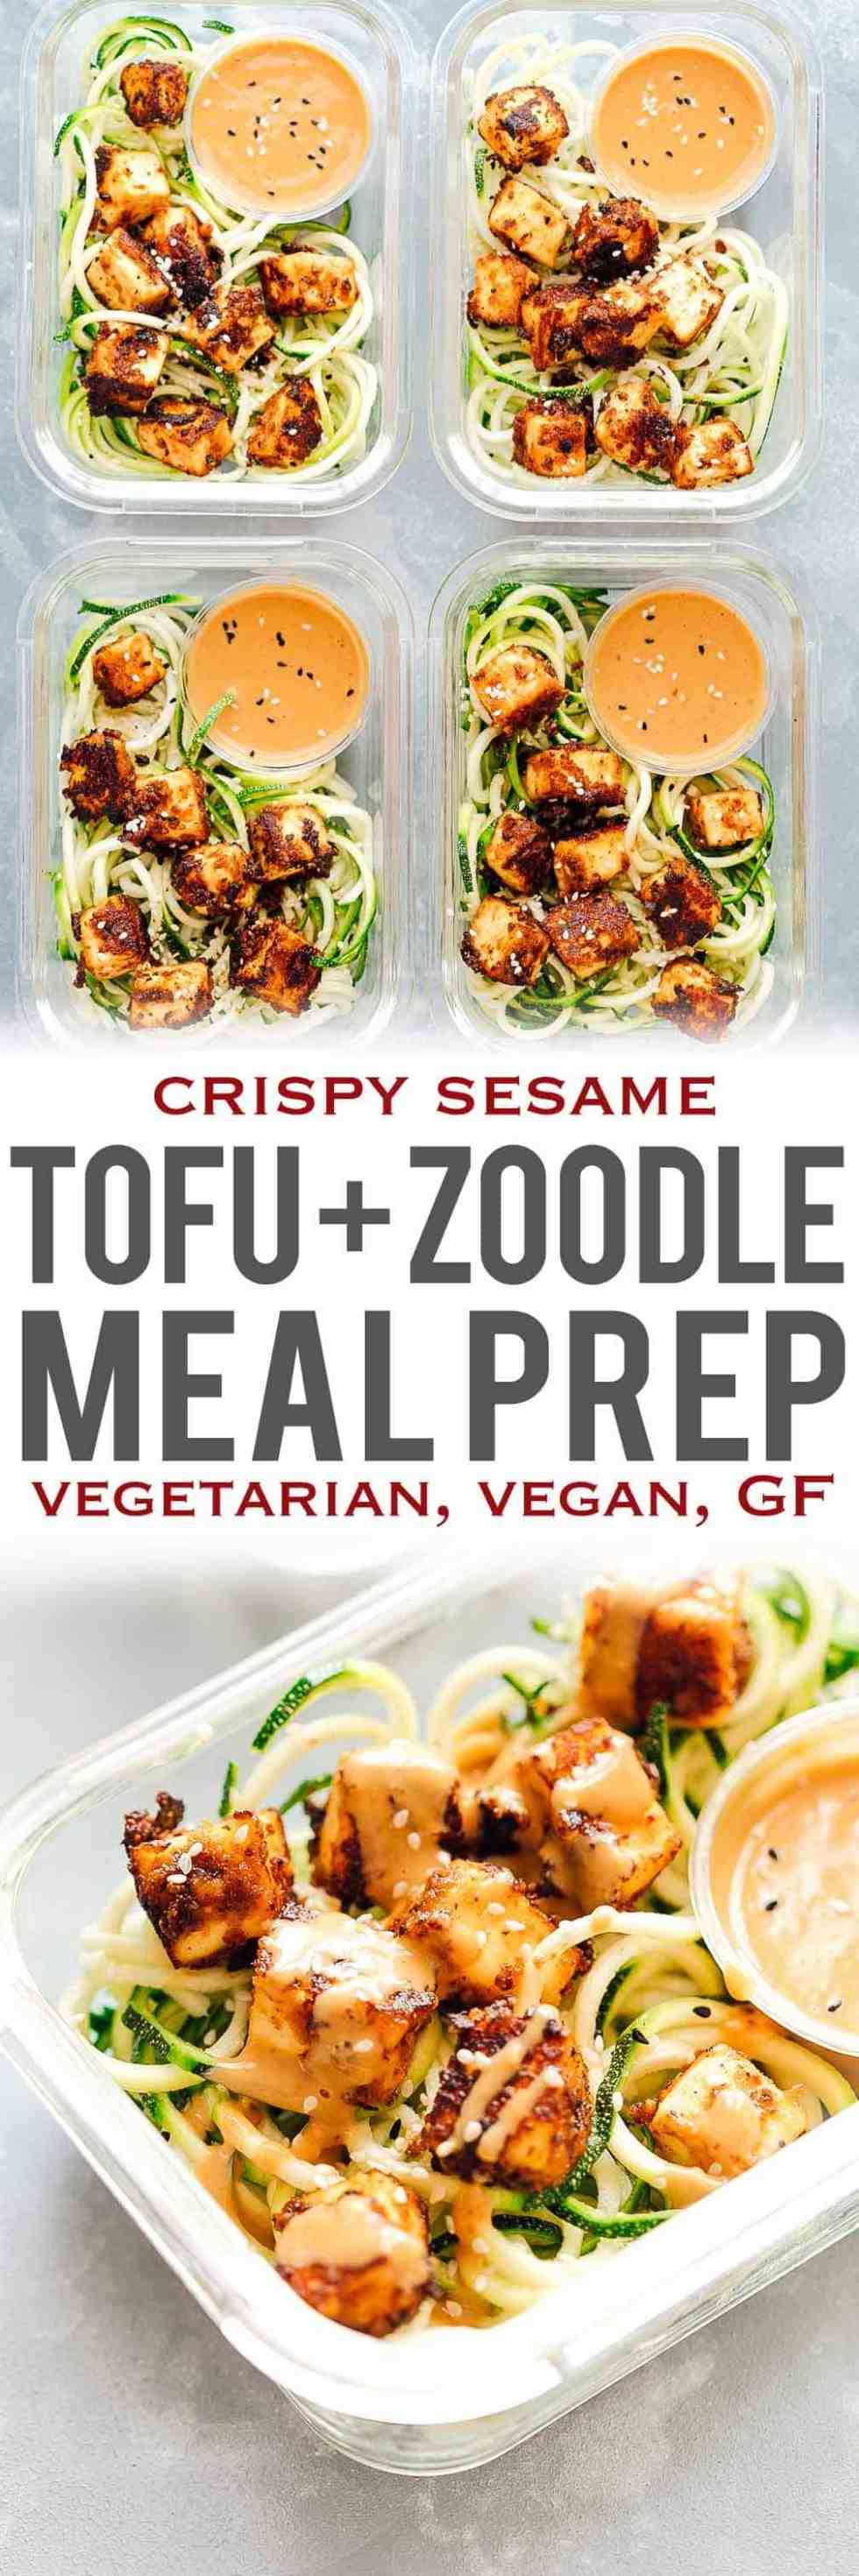 Crispy sesame tofu with zucchini noodles is the perfect healthy, vegetarian meal prep lunch recipe that is low carb, vegan and gluten free too. These easy meal prep lunches are served with crispy sesame tofu on a bed of zucchini noodles and a delicious peanut sauce to go with! Healthy lunch recipe on the go!